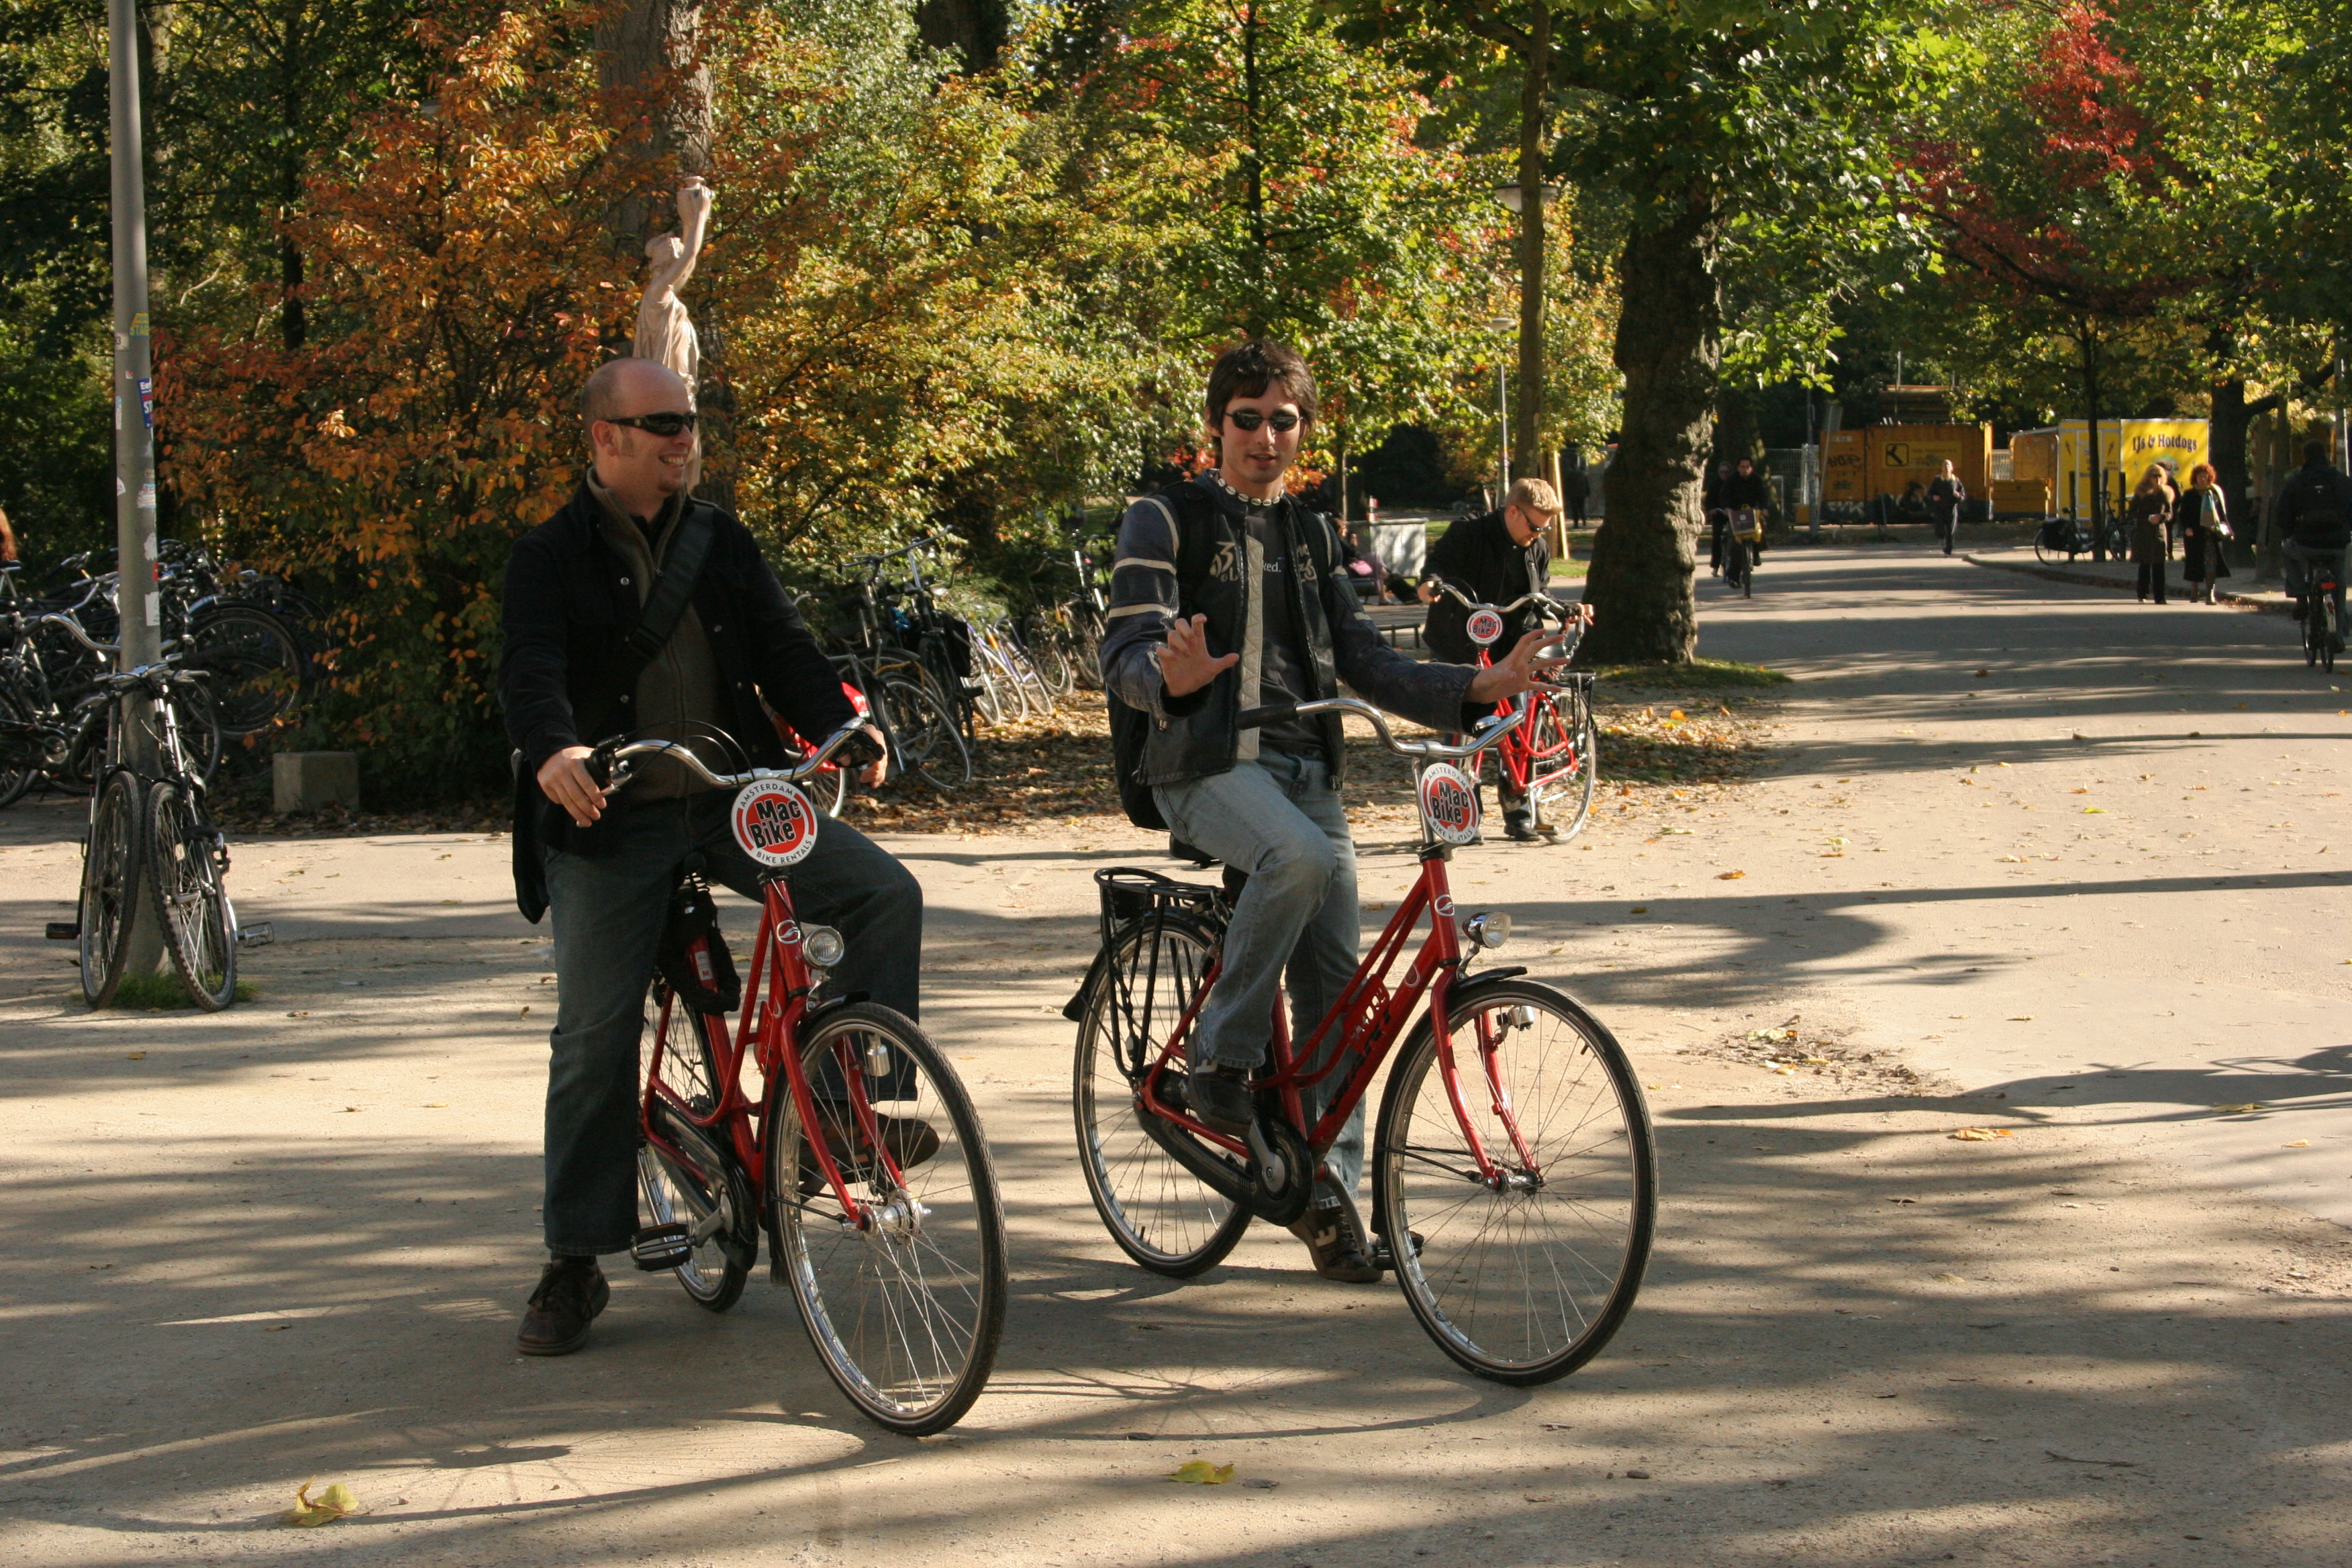 Cycling and Hanging out in AMS 17Oct05 - 4, 20d, Ams, Amsterdam, Bike, HQ Photo